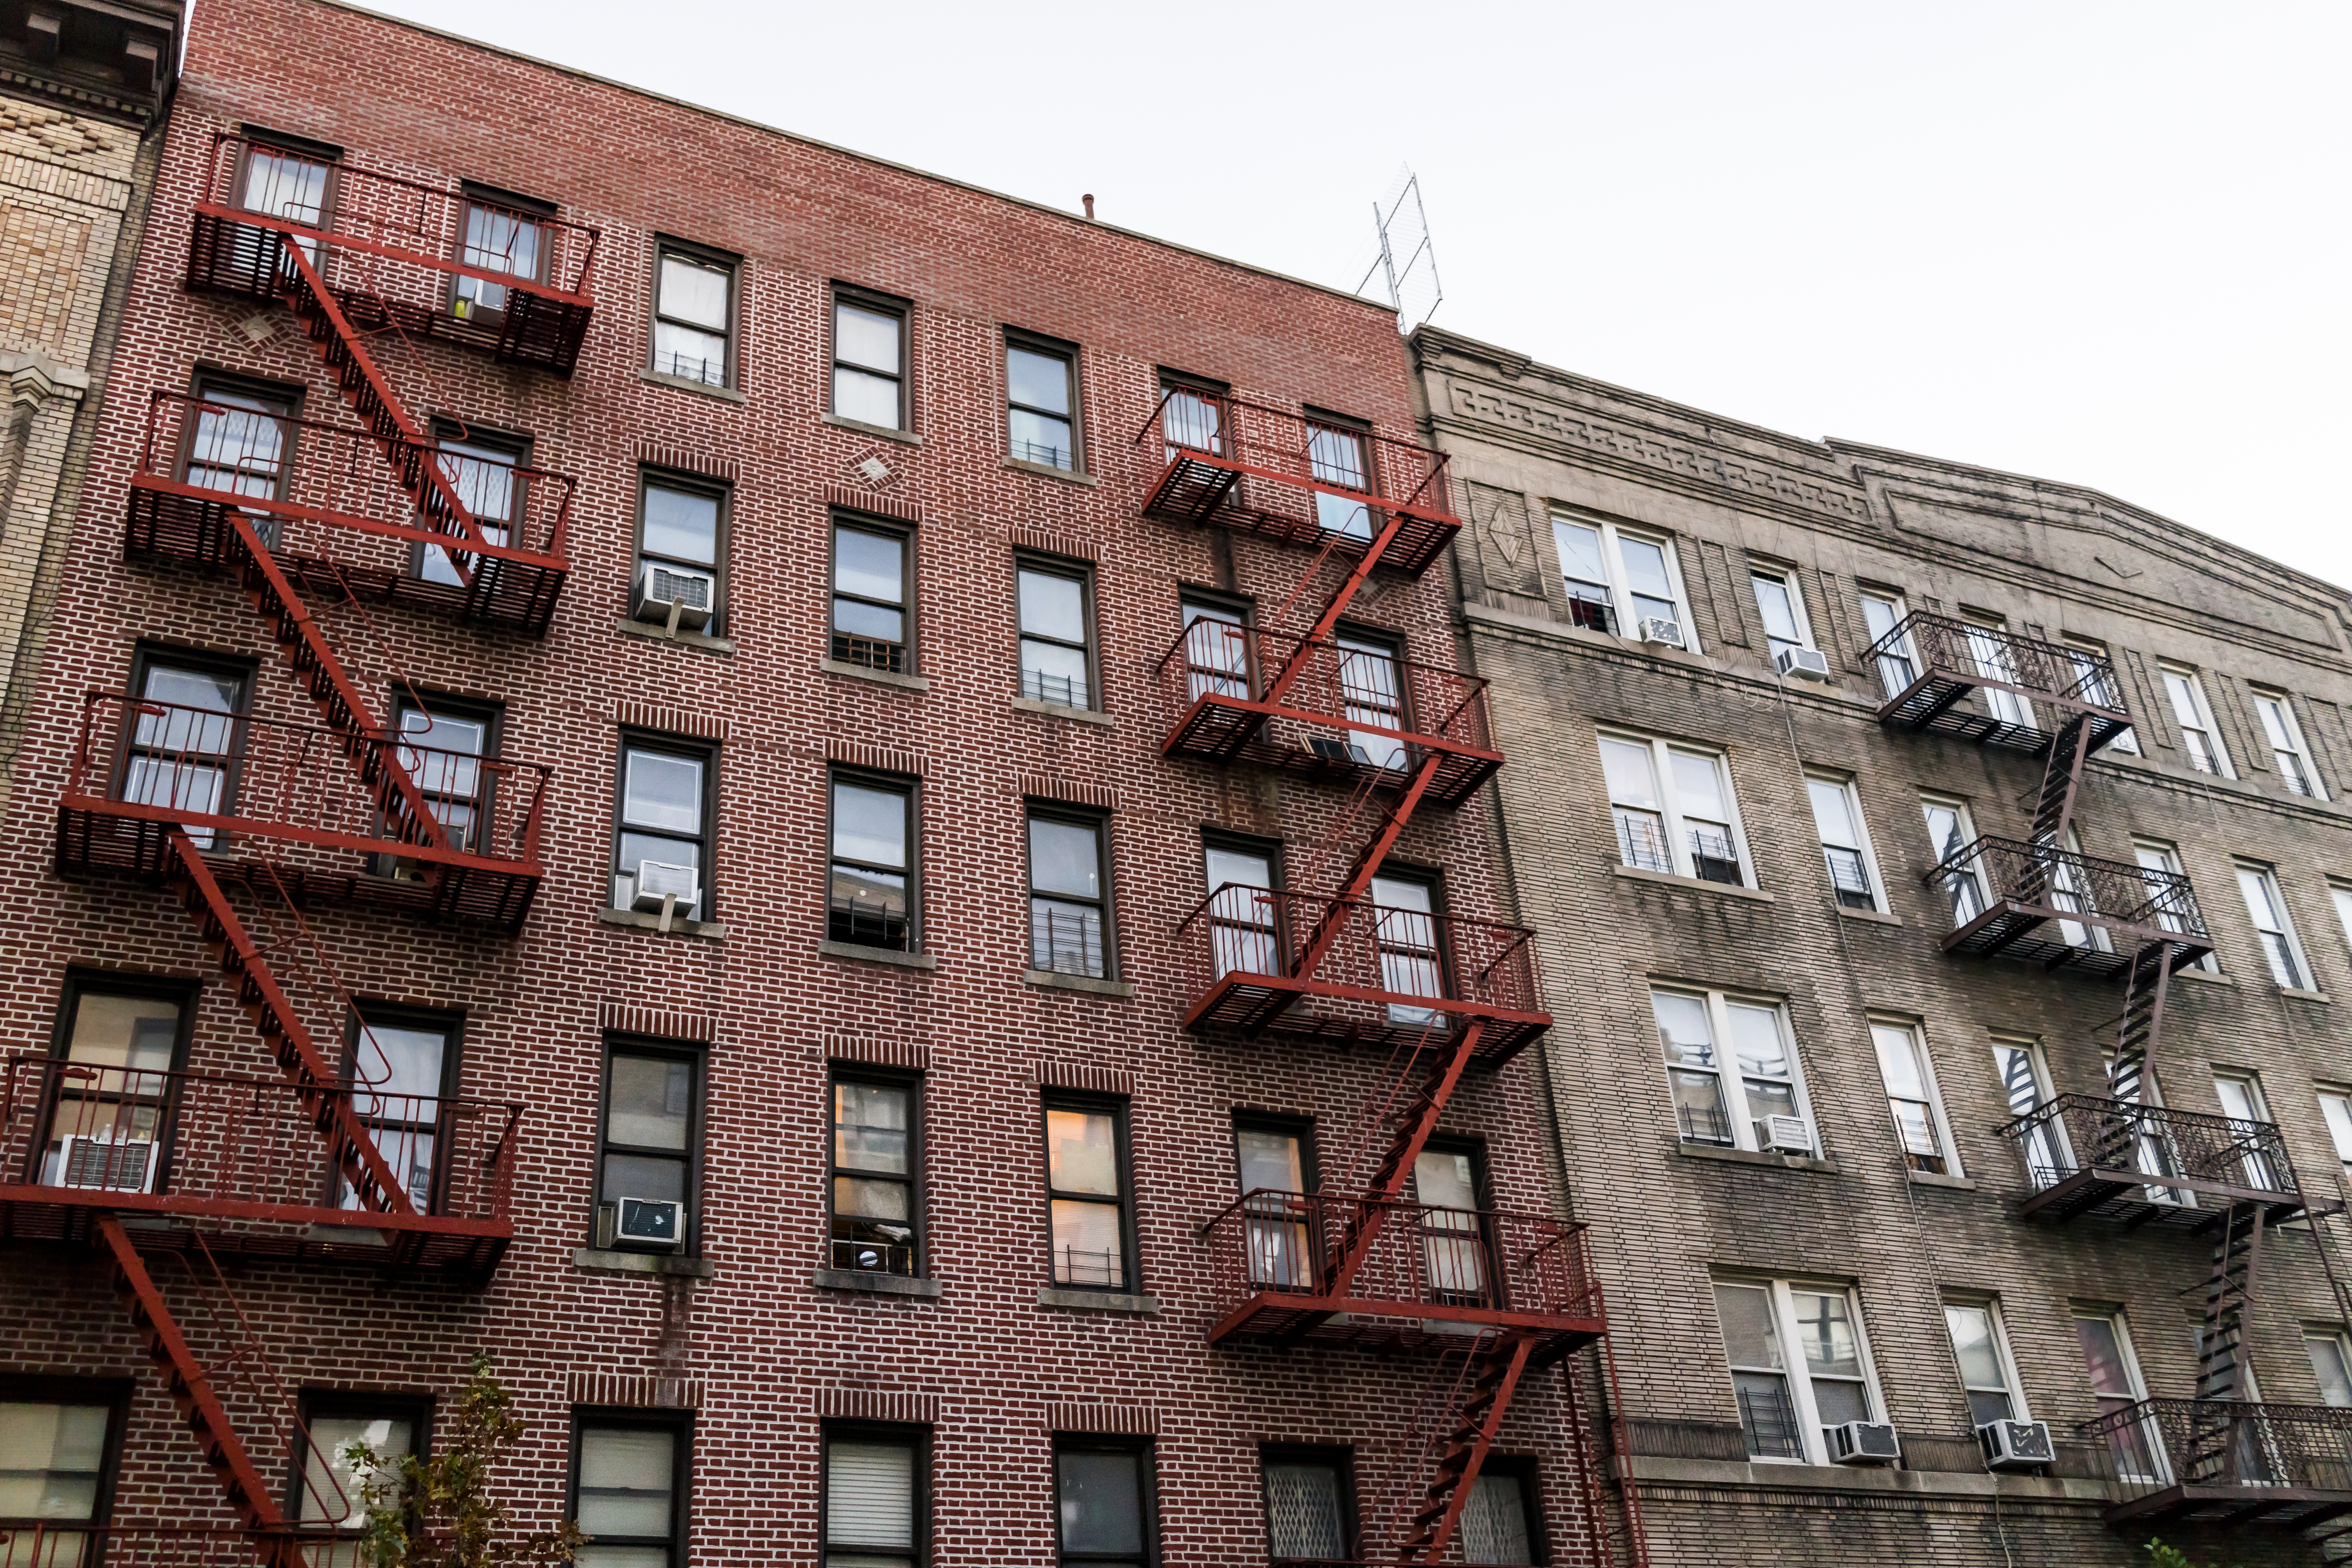 Two NYC tenement buildings next to each other with several fire escapes.